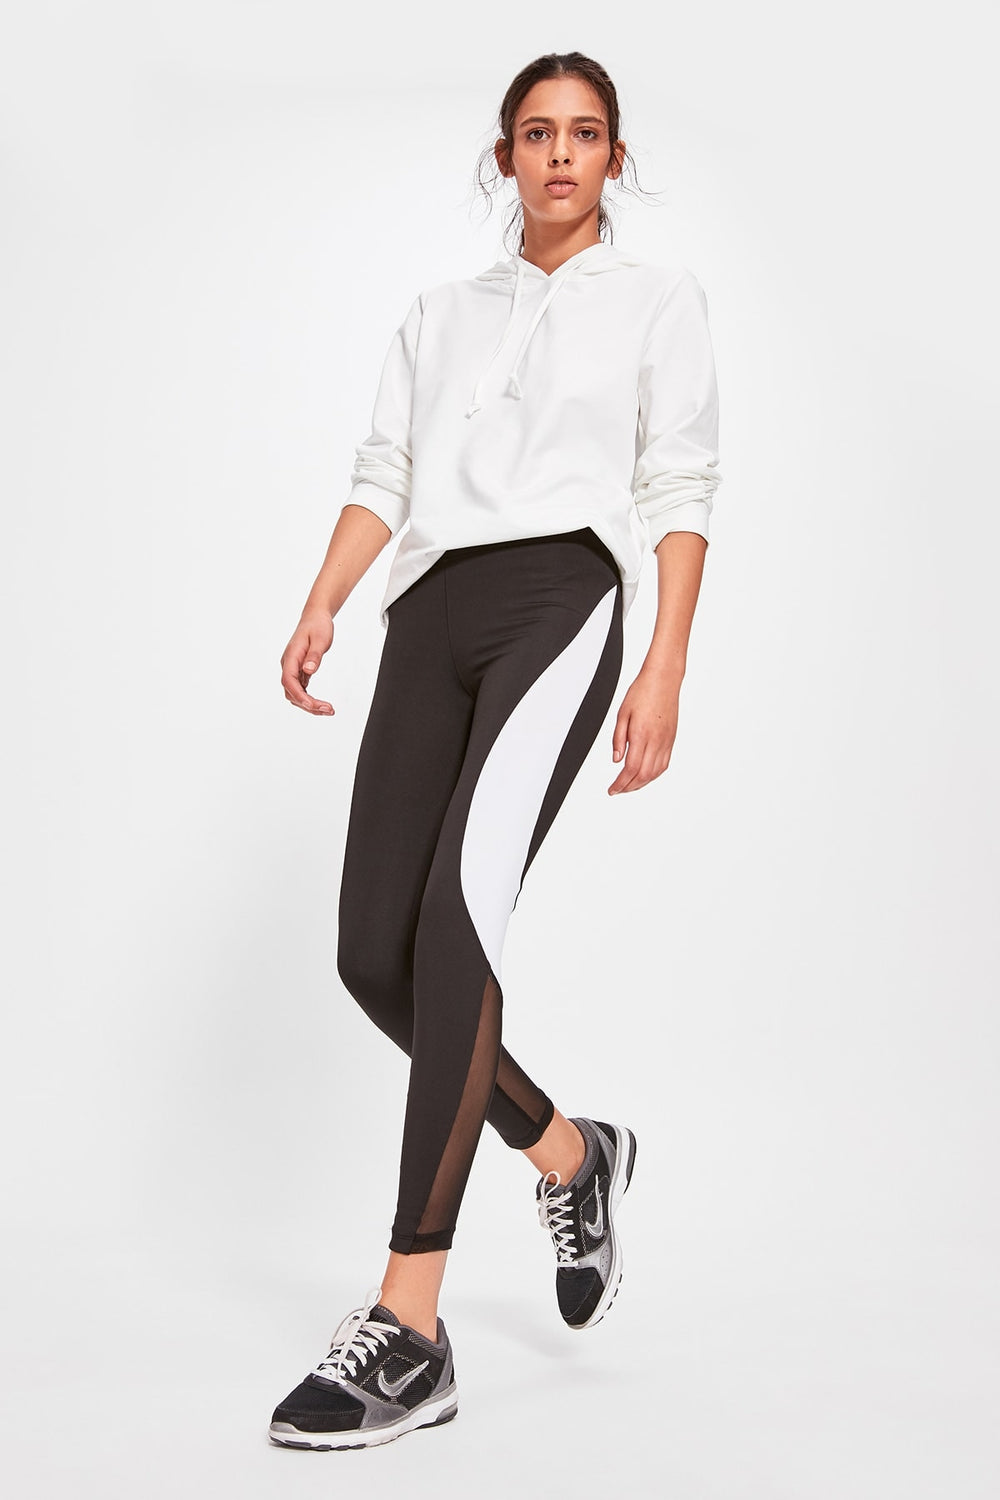 Miss Zut Miss Zut With Color Block and Tulle Detailed Sports Leggings Miss Zut &CO